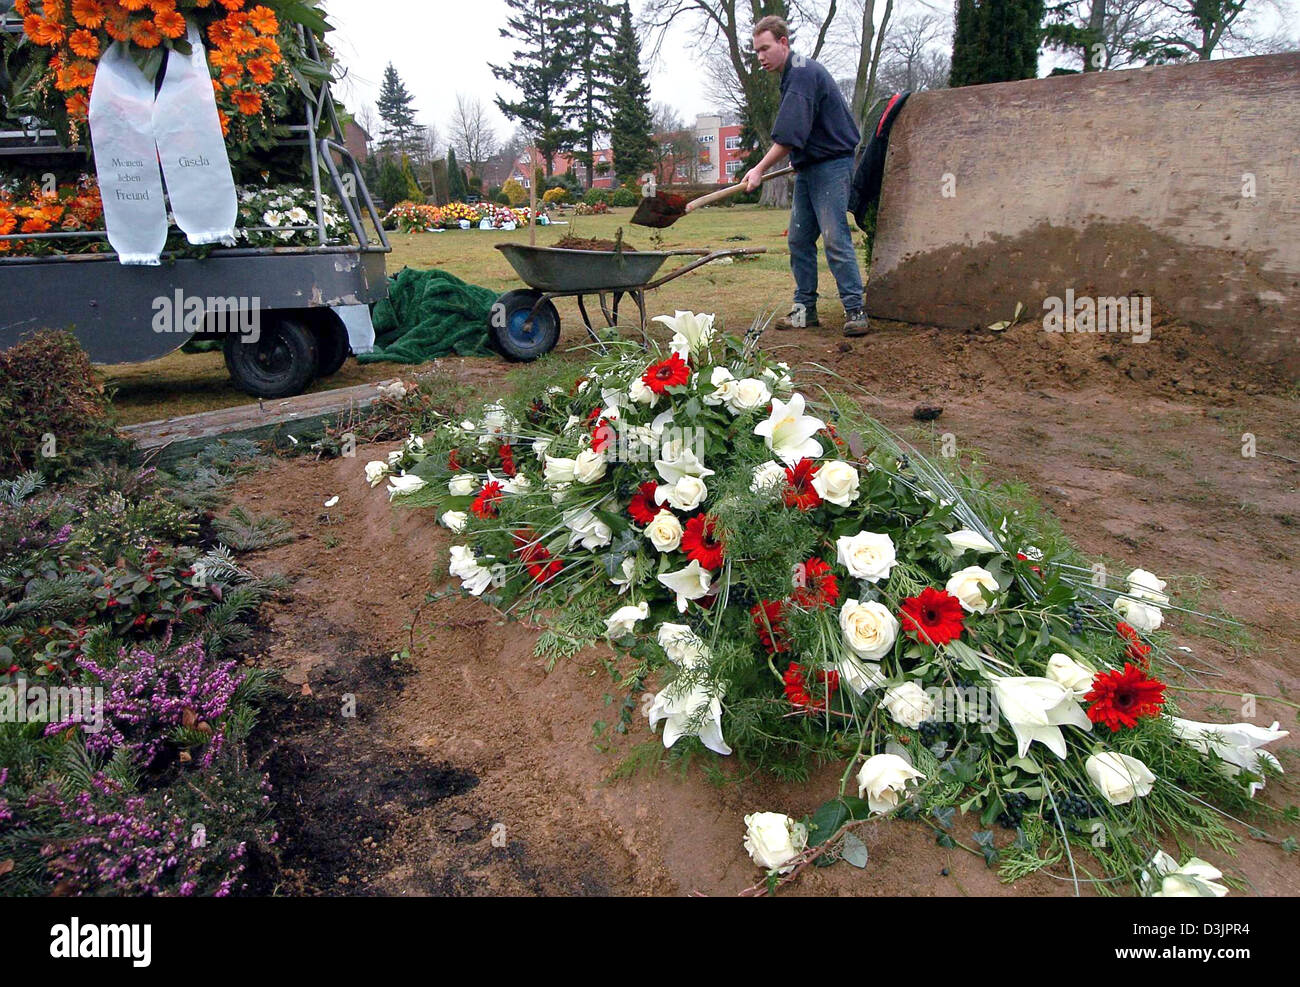 Sports Spo People Grave Flowers Funeral Germany Stock Photos